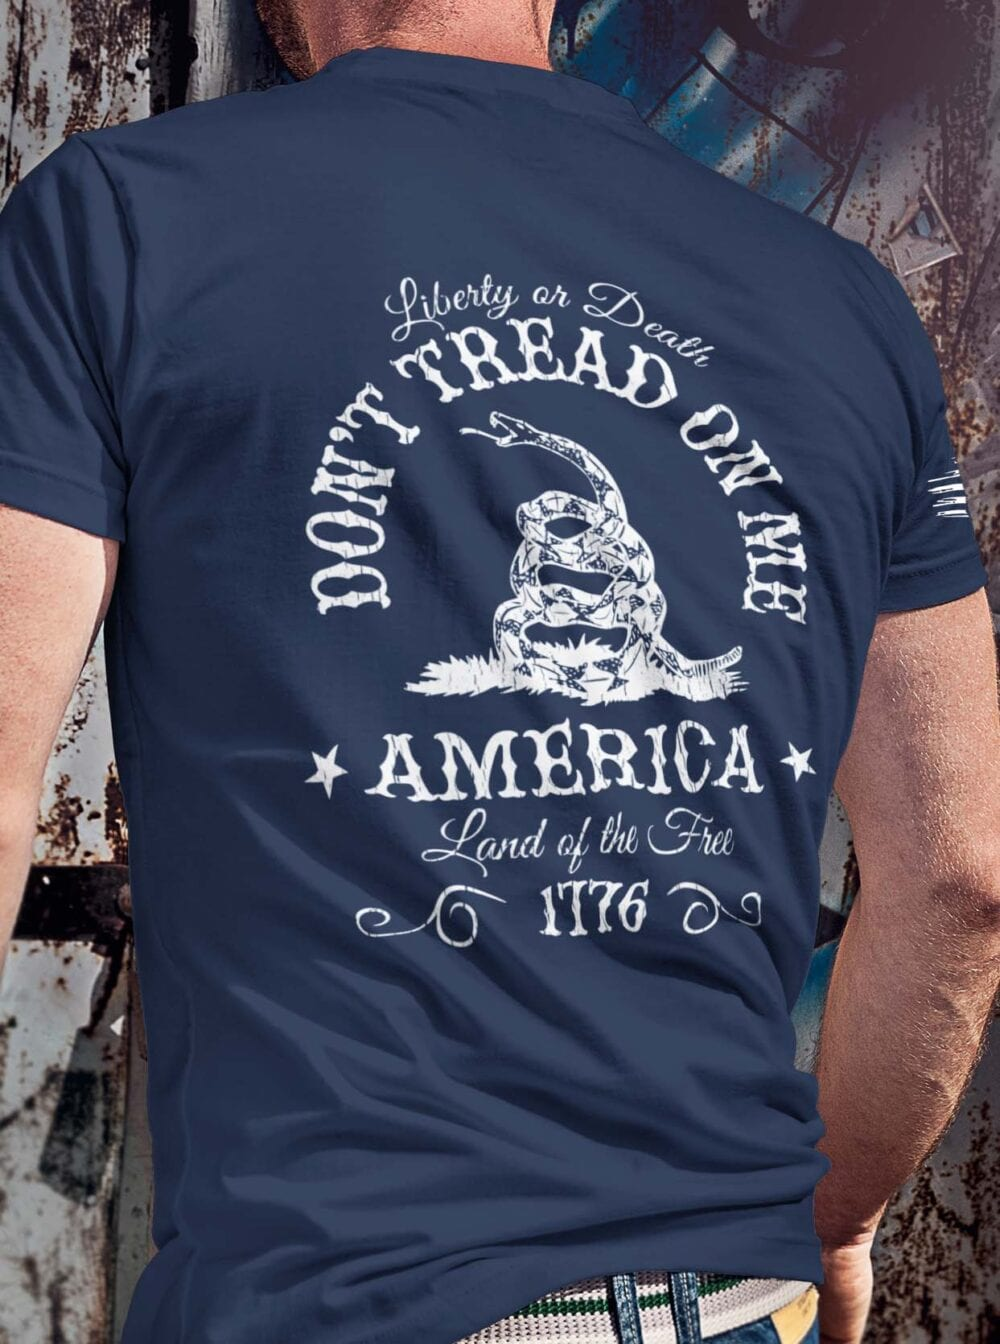 Don't Tread On Me on a Men's Navy Blue Shirt